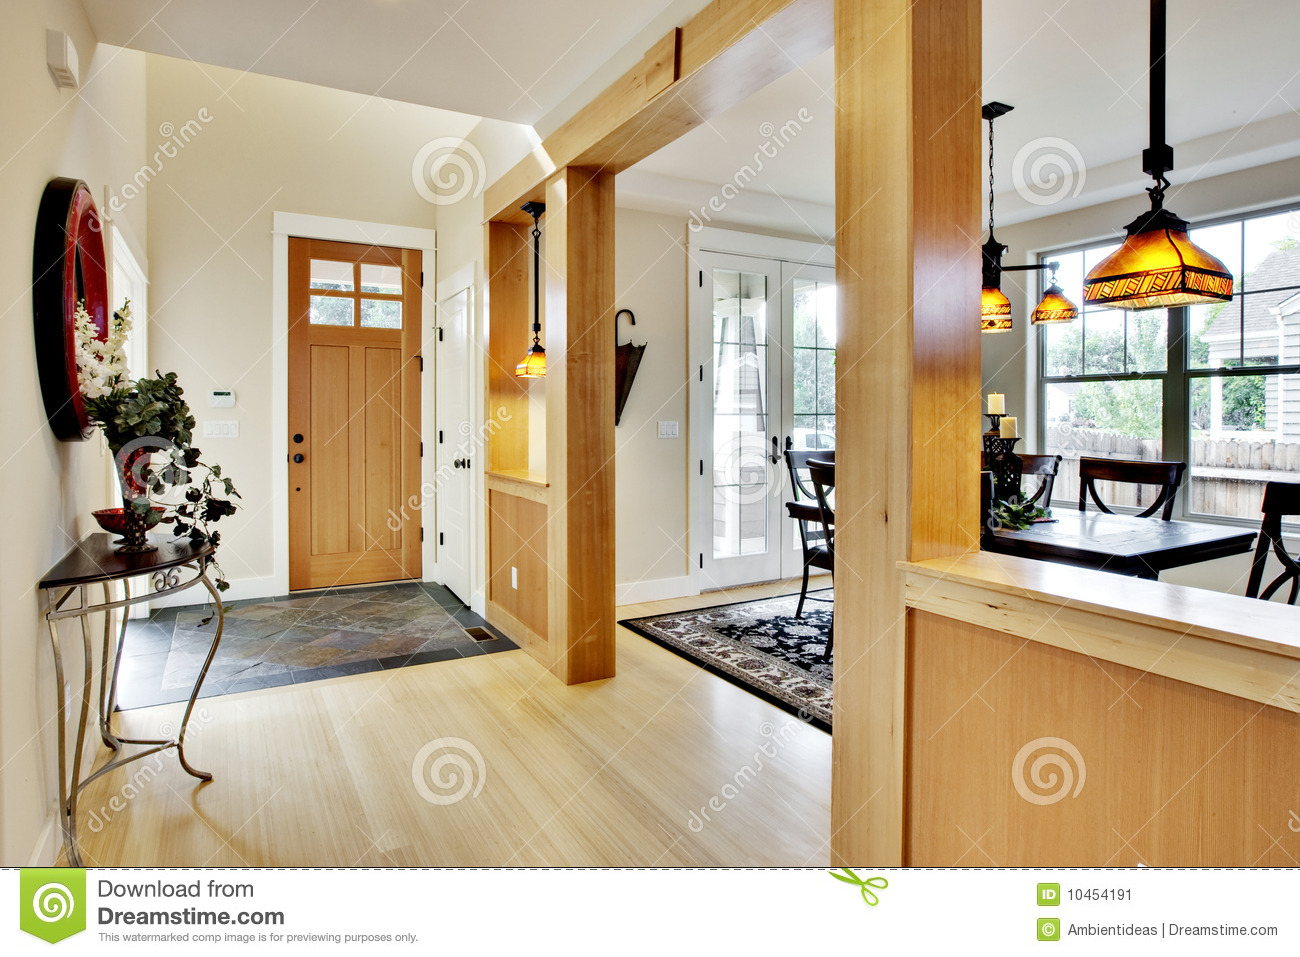 Home entrance hallway stock image image 10454191 - Deco entree maison interieur ...